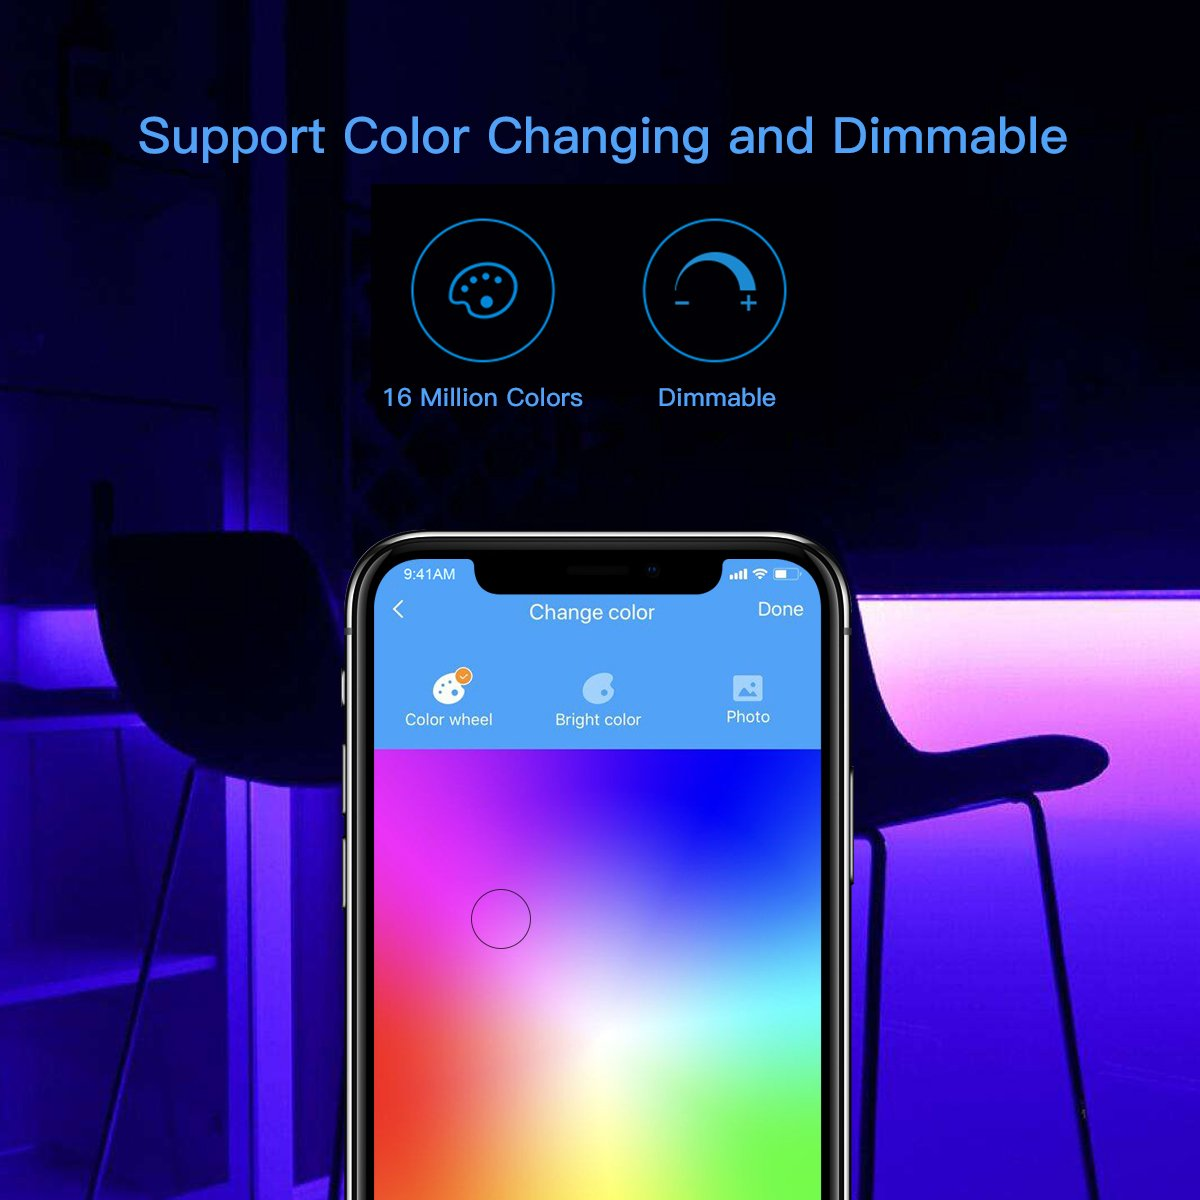 Koogeek Dimmable Smart LED Light Strip, Siri Timer Remote Control, 16000K Colors USB Powered 2m Compatible with Apple HomeKit, Android, Alexa, Alexa Echo and Google Assistant on 2.4Ghz by Koogeek (Image #3)